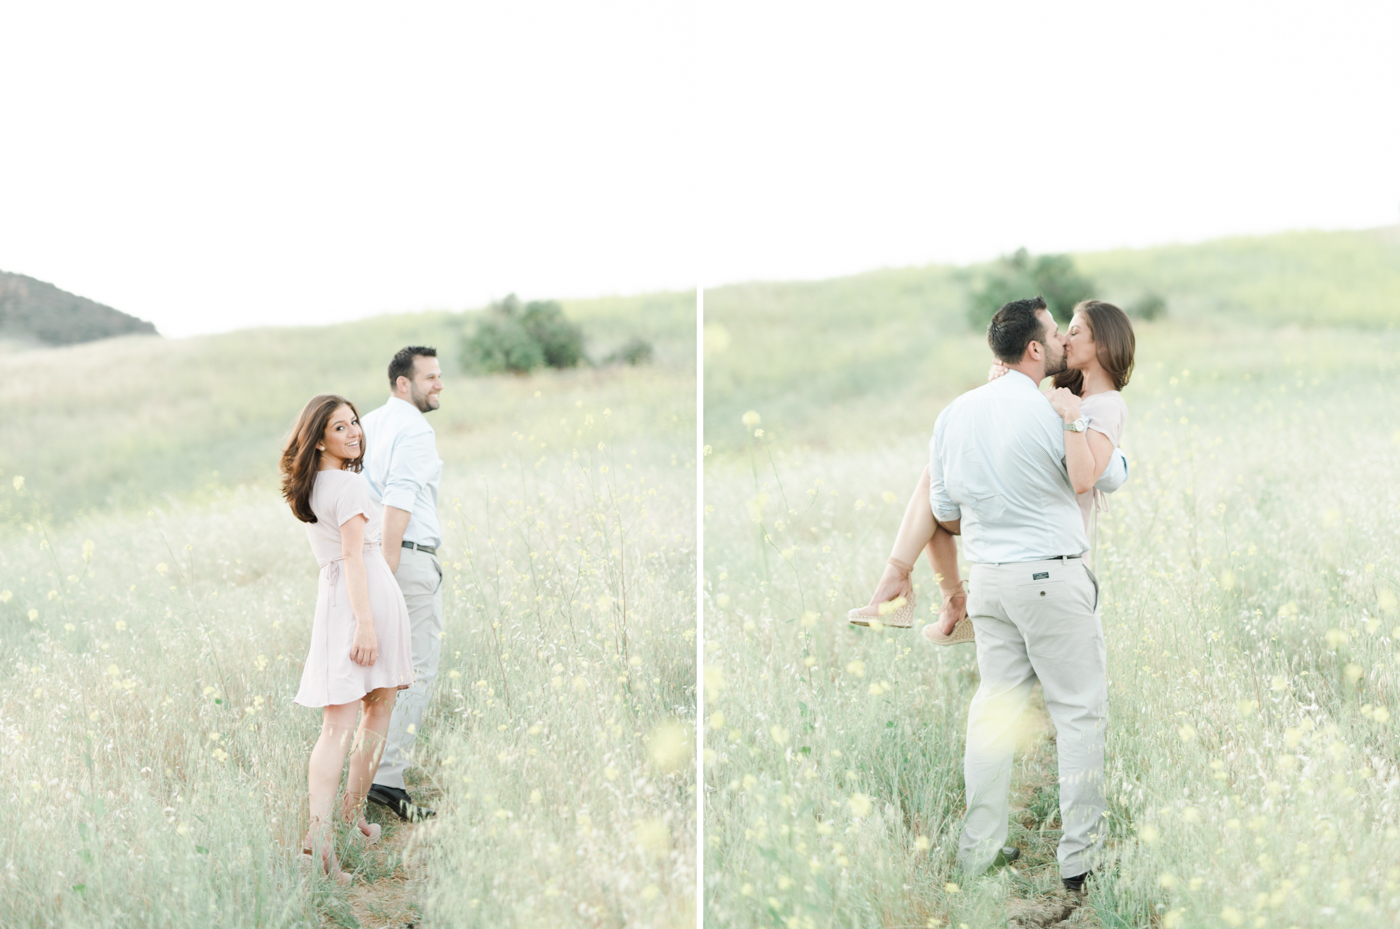 a&a_malibu_creek_state_park_engagement_session_los_angeles_fine_art_wedding_photographer-16.jpg